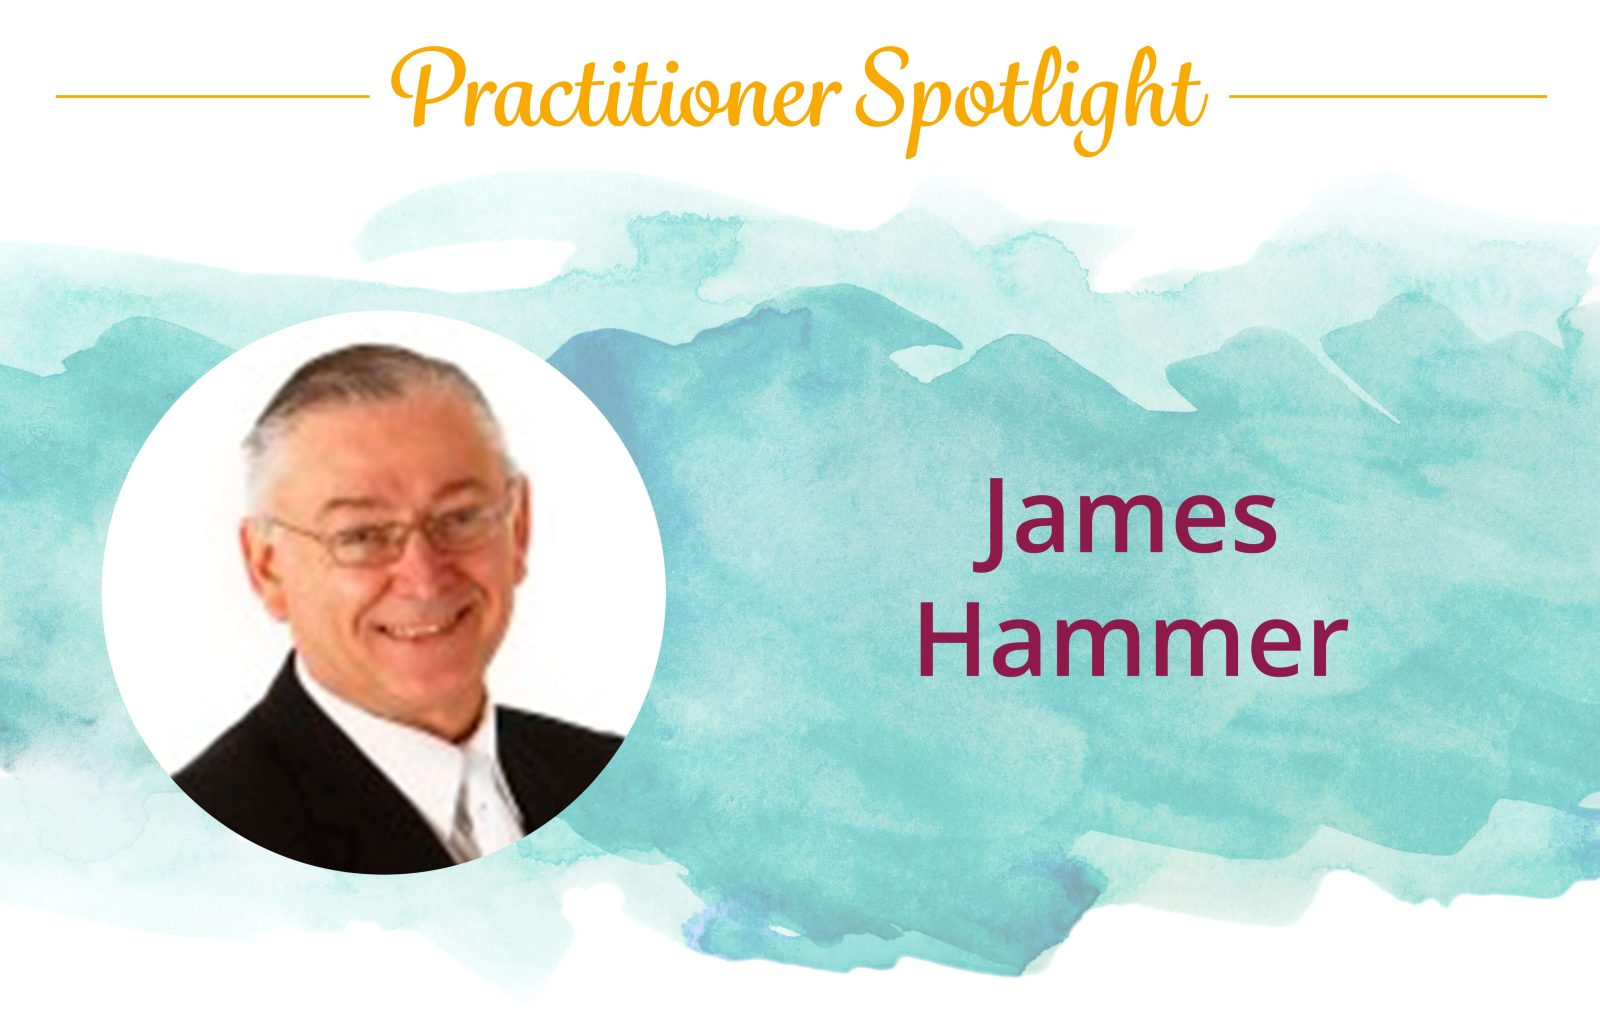 Practitioner Spotlight: James Hammer